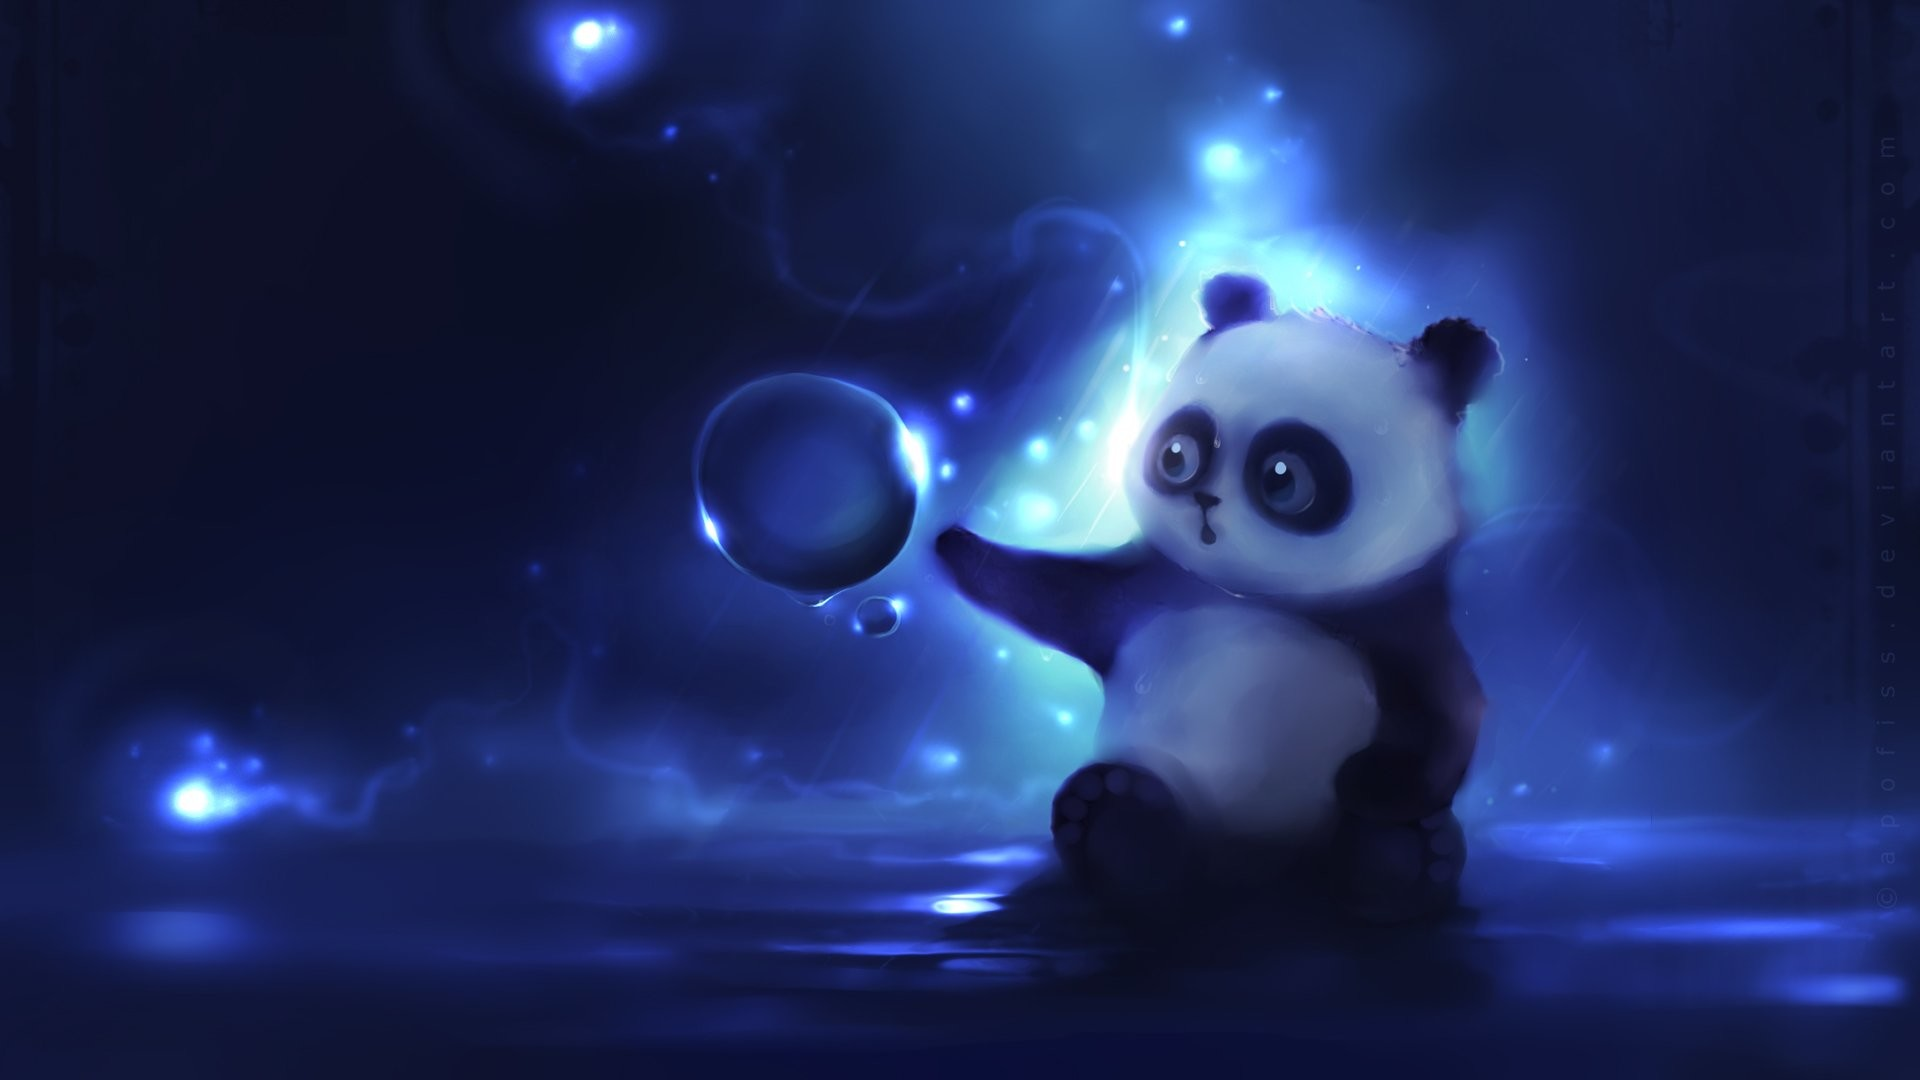 cute anime animals wallpaper 63 images